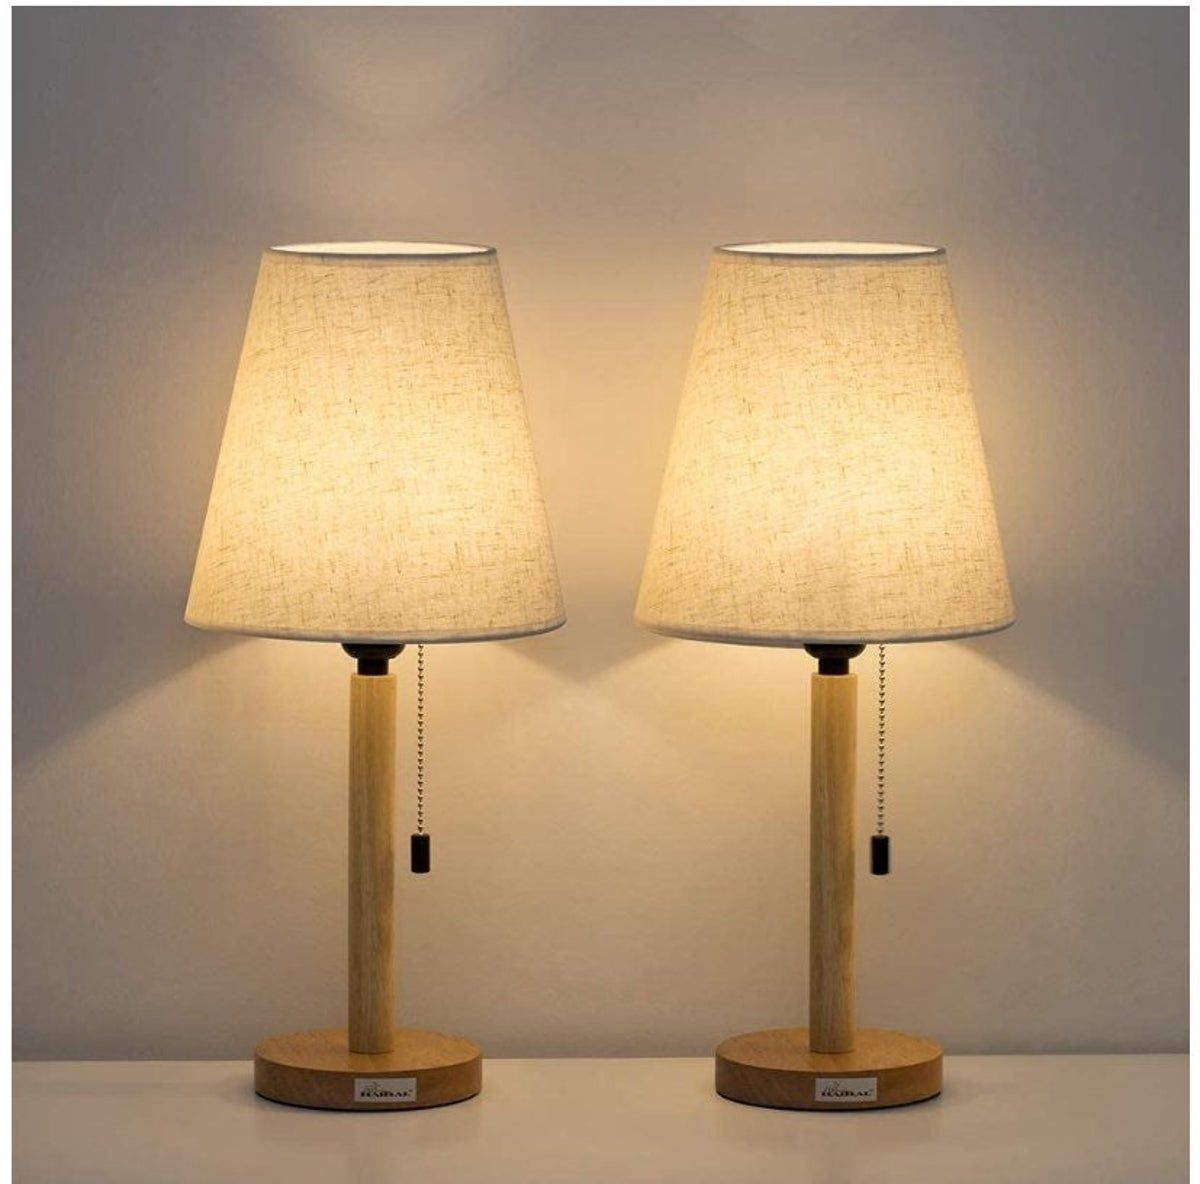 Table Lamp Set Of 2 With Wooden Base In 2020 Small Bedside Table Lamps Table Lamp Elegant Table Lamp